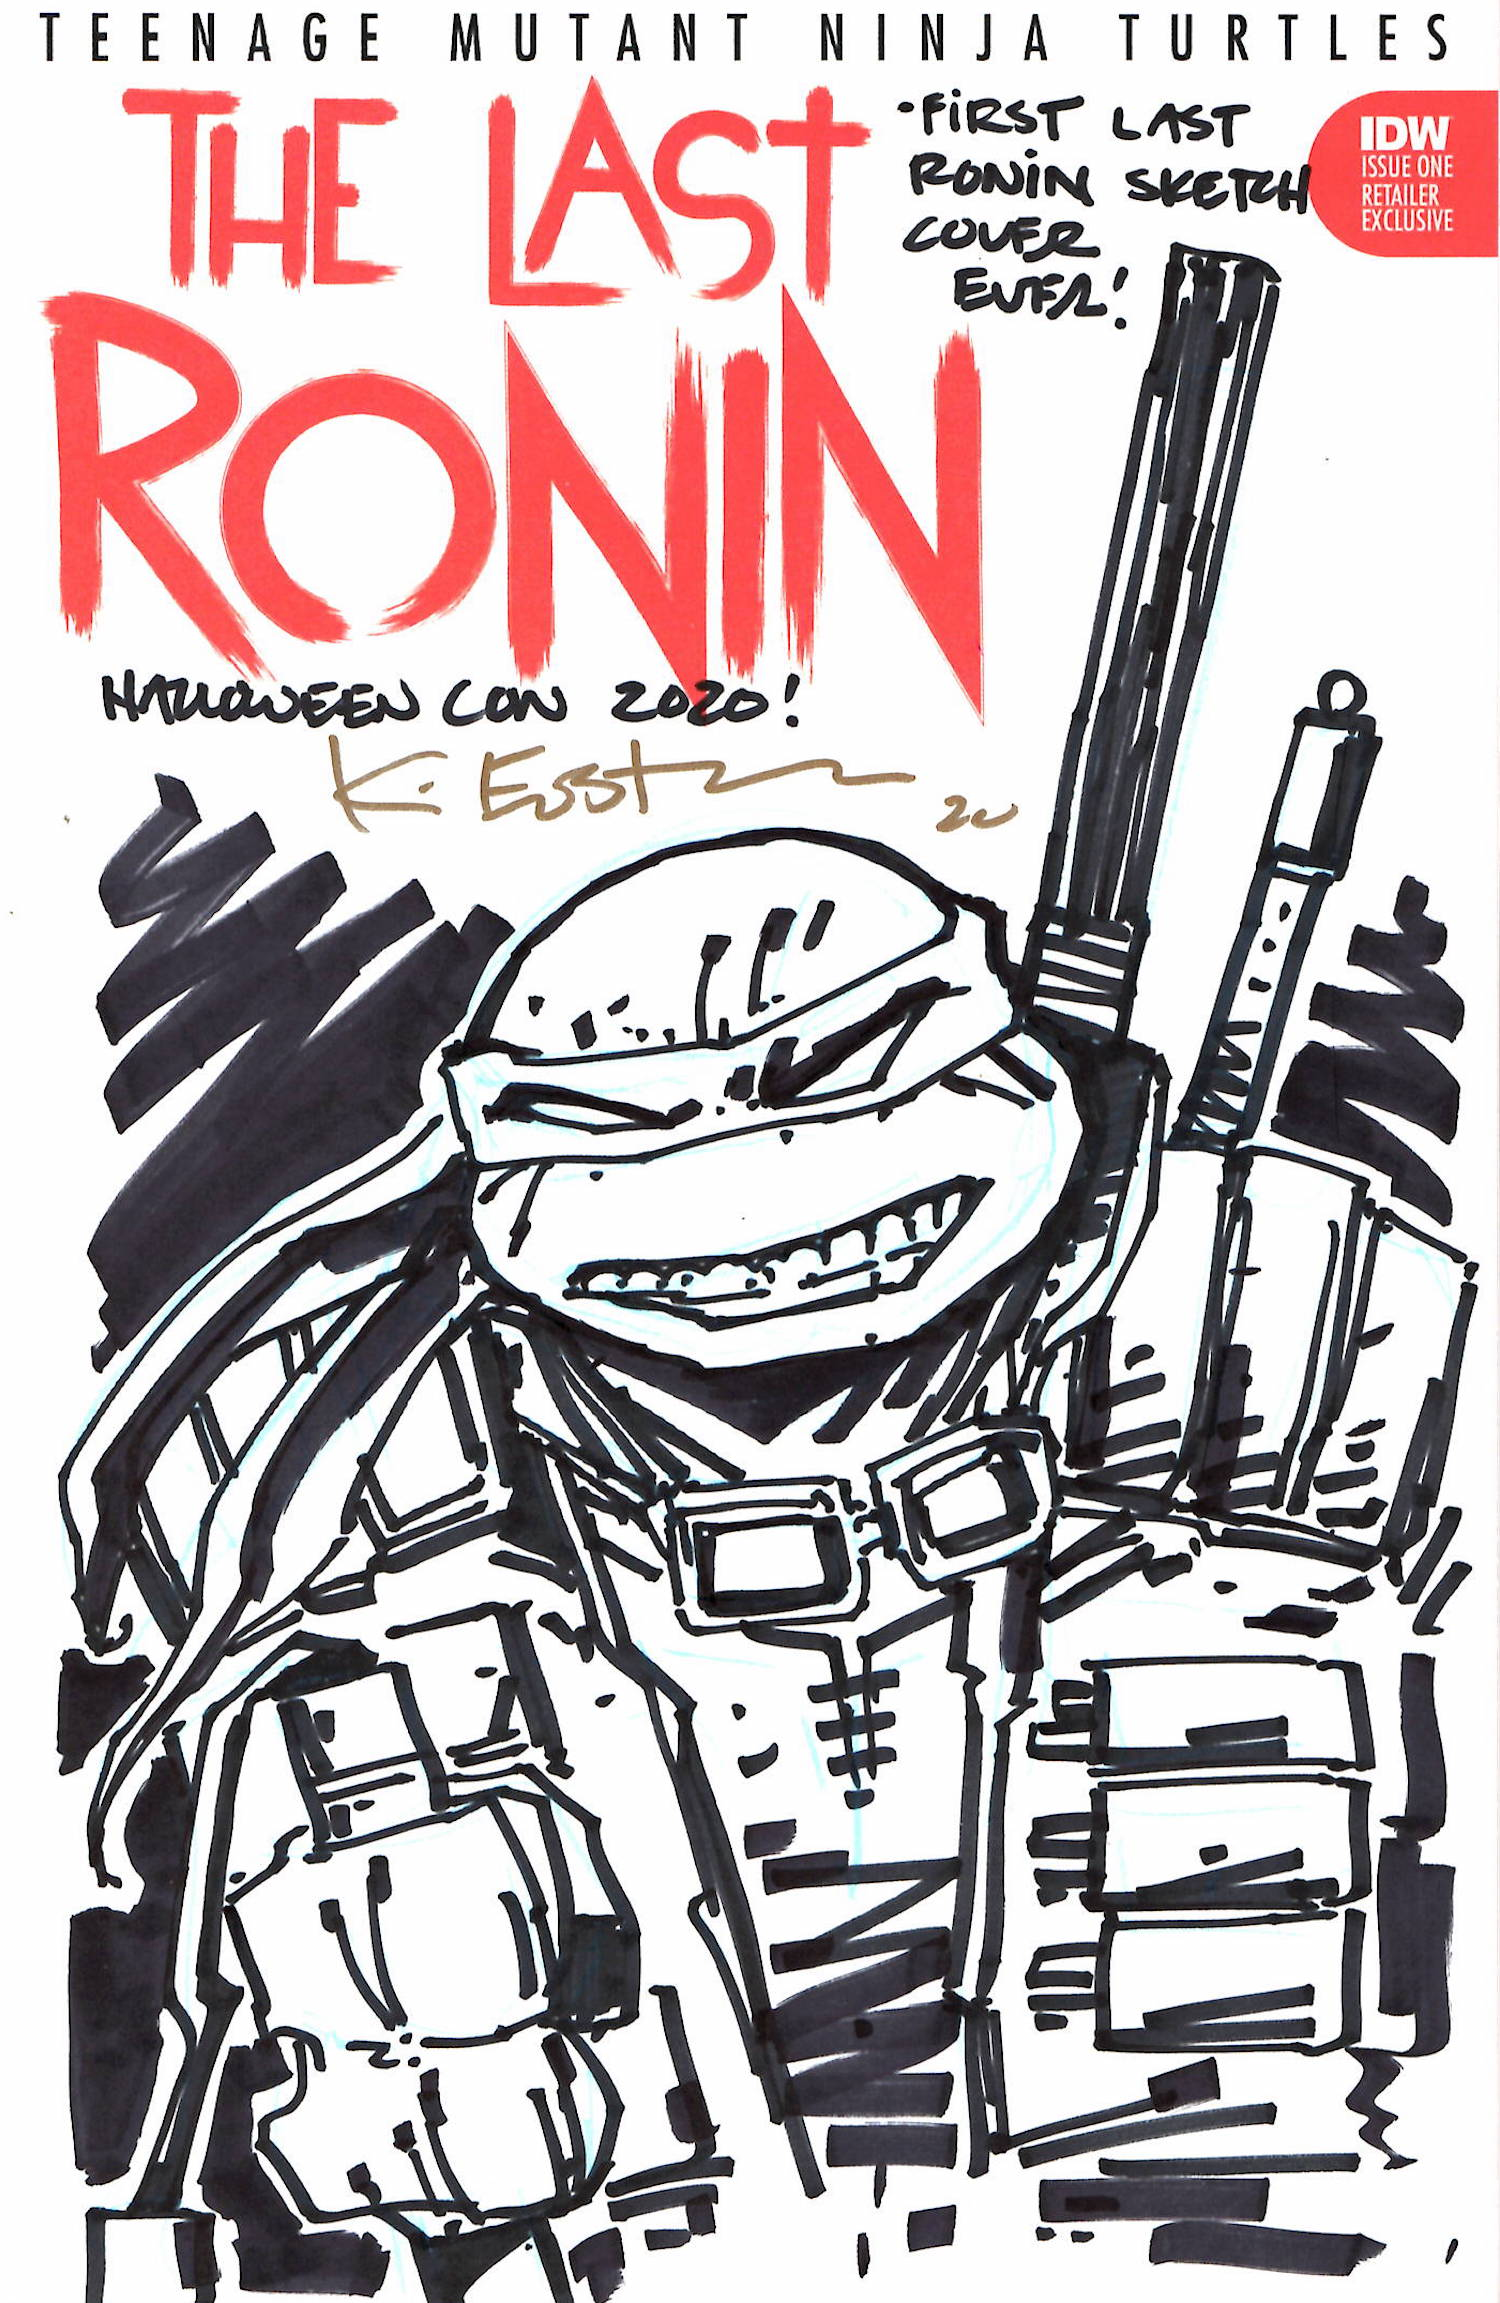 The First Ever Last Ronin Sketch Cover - October 2020 Original at Auction NOW!!!!!!!!!!!!!